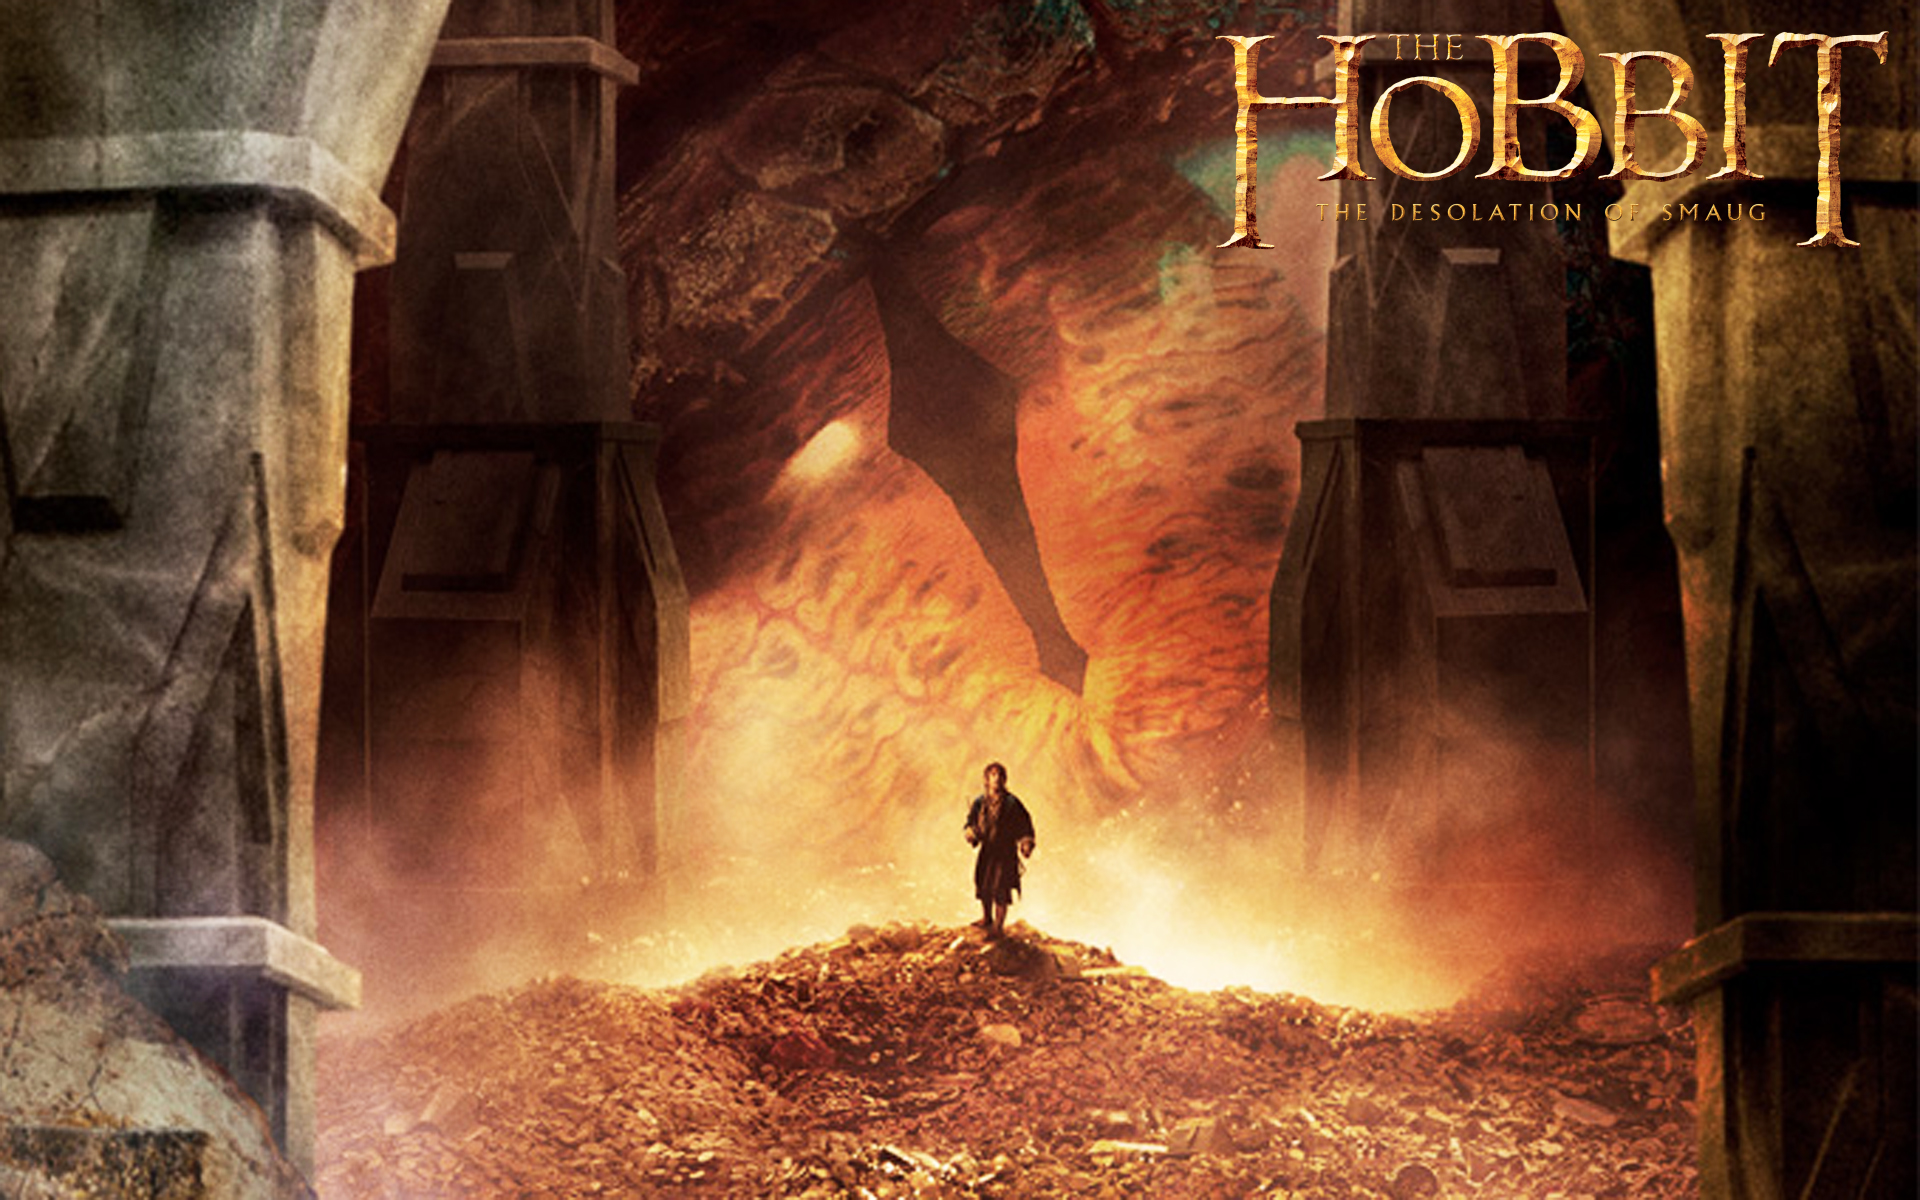 The Hobbit The Desolation of Smaug Wallpaper   The Hobbit Photo 1920x1200